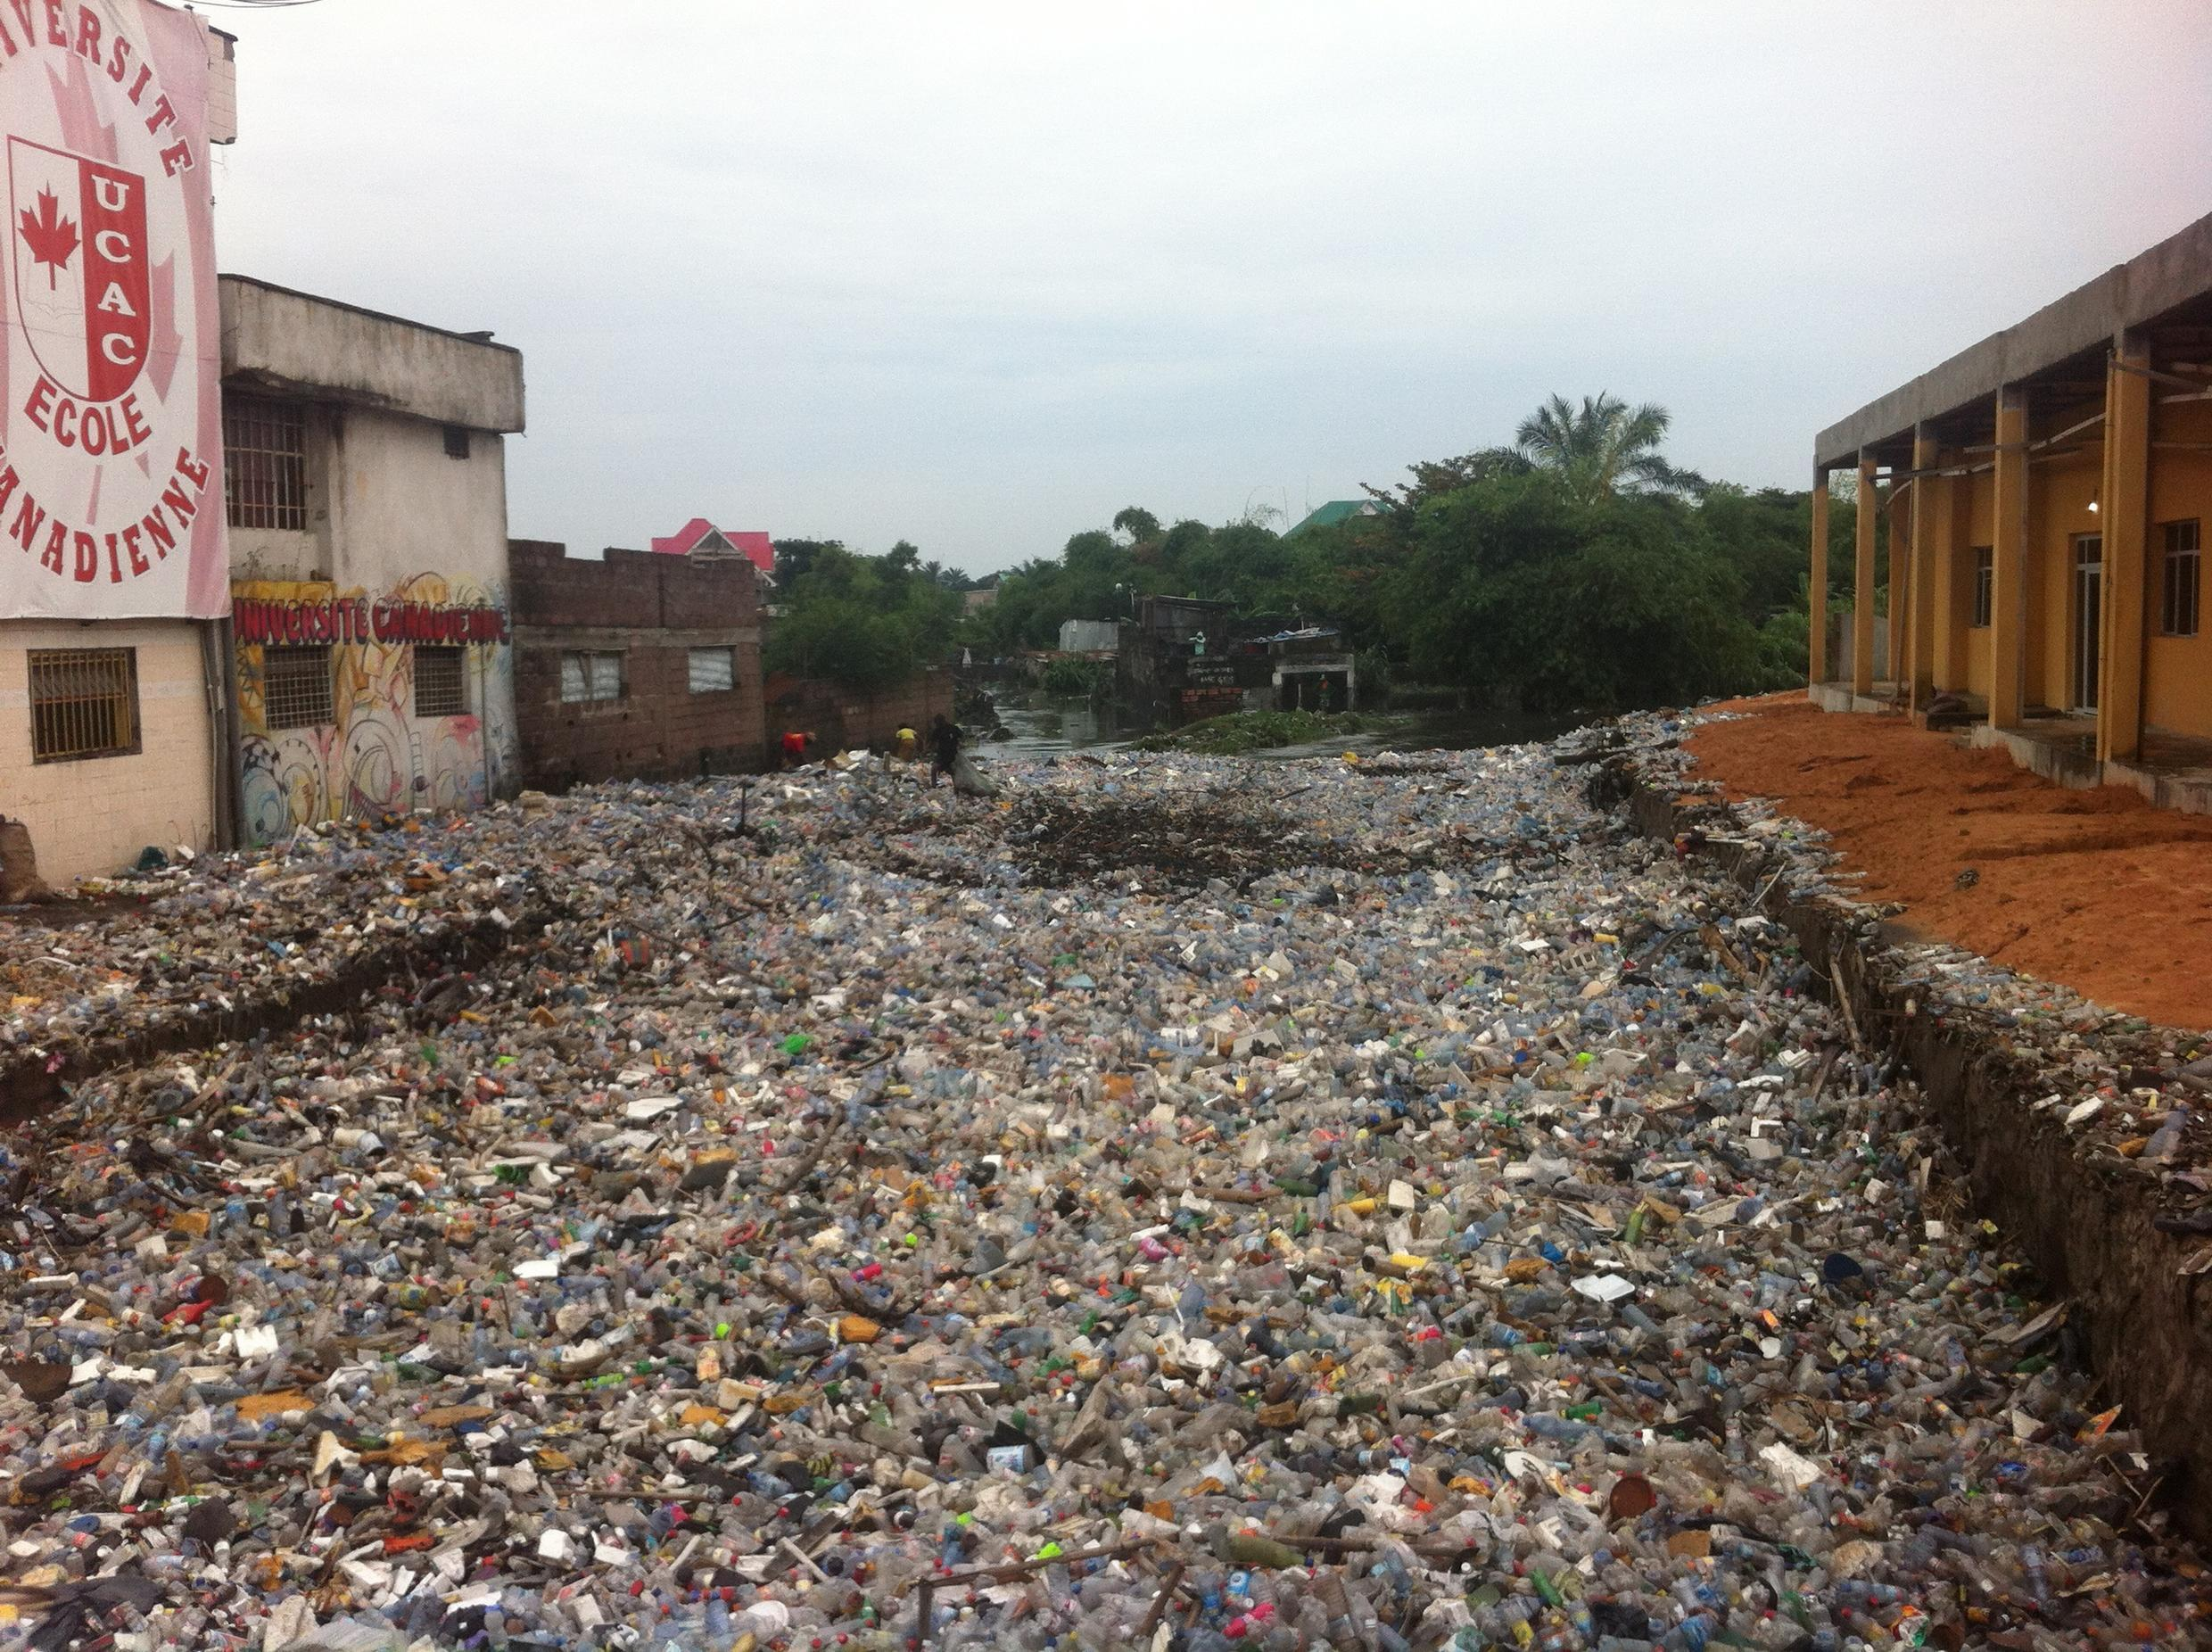 A riverbed in Limete, Kinshasa, DRC, polluted by plastic bottles and other plastic debris.